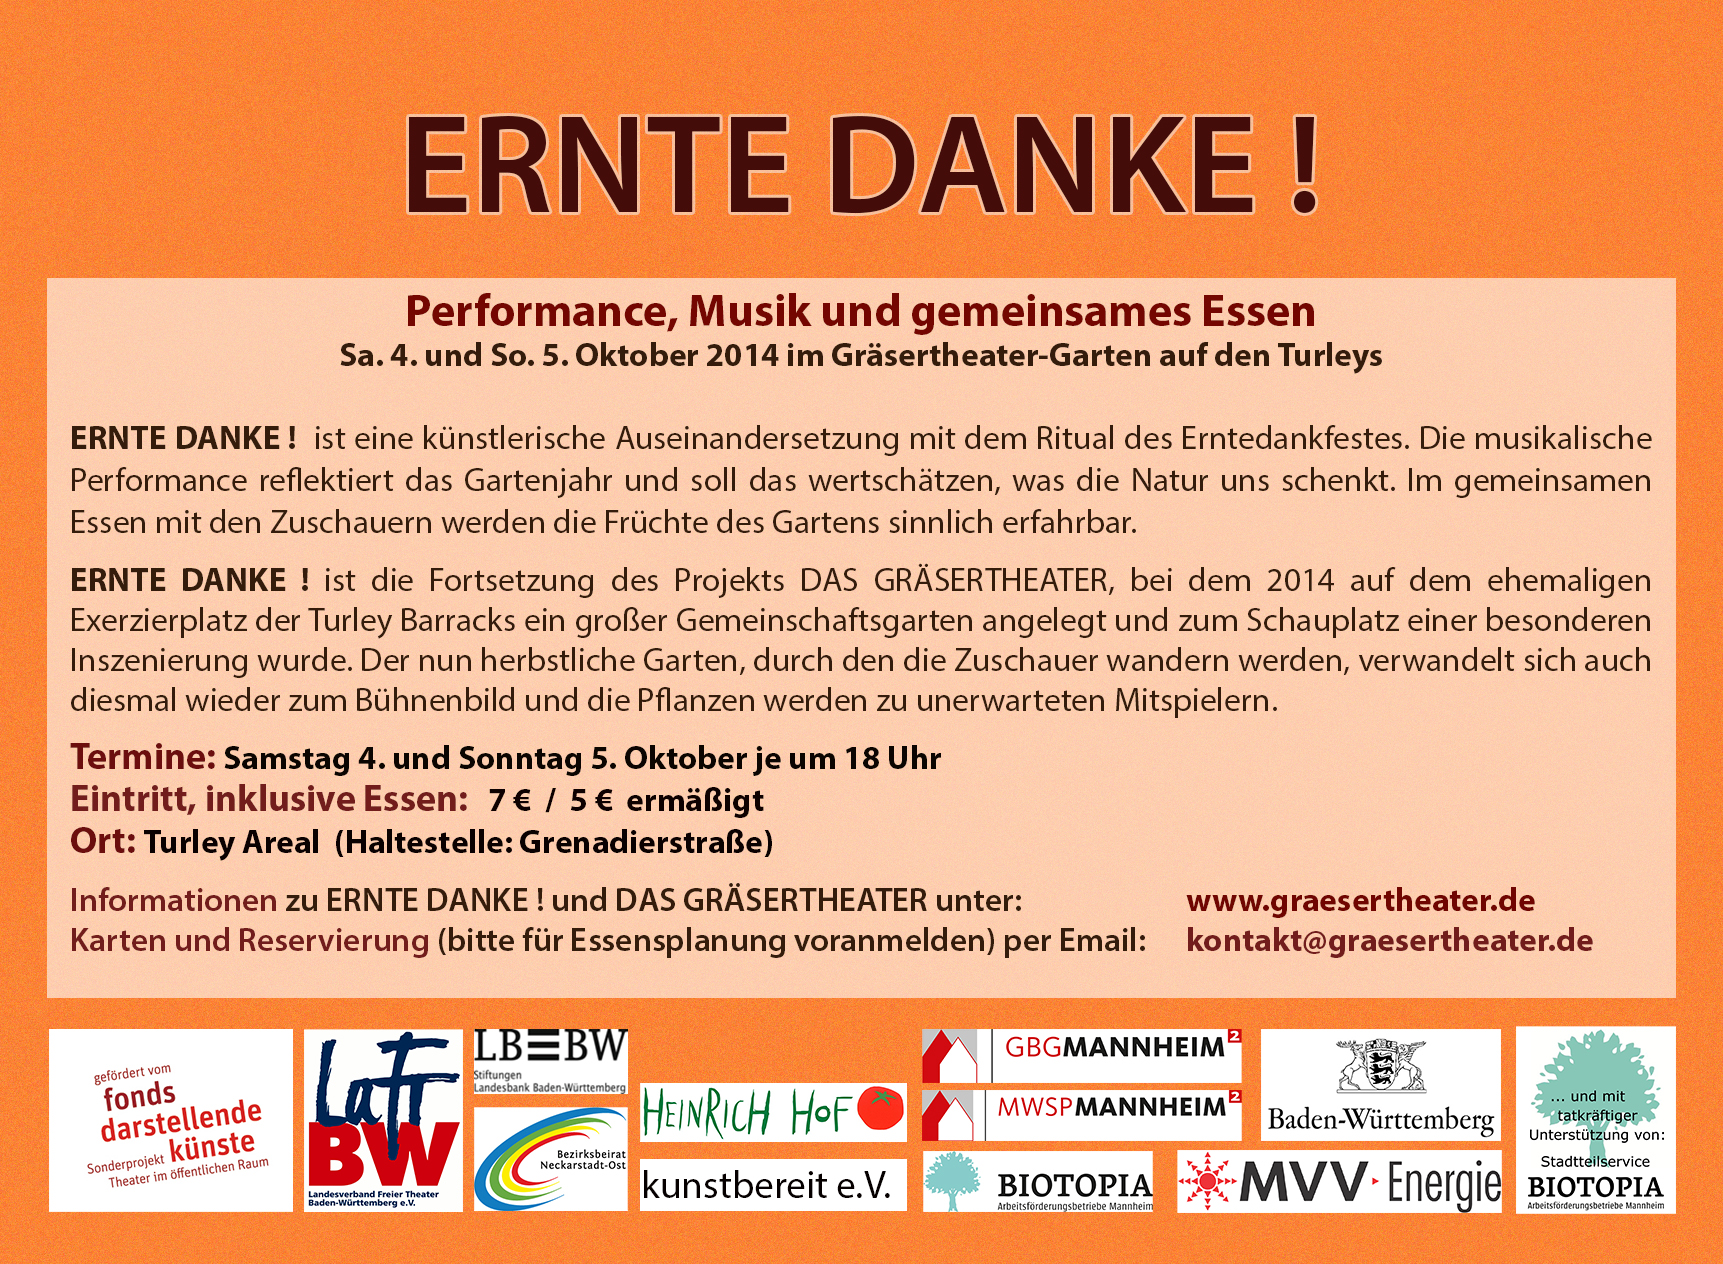 http://www.graesertheater.de/wp-content/uploads/2014/09/Hinten_Final.jpg